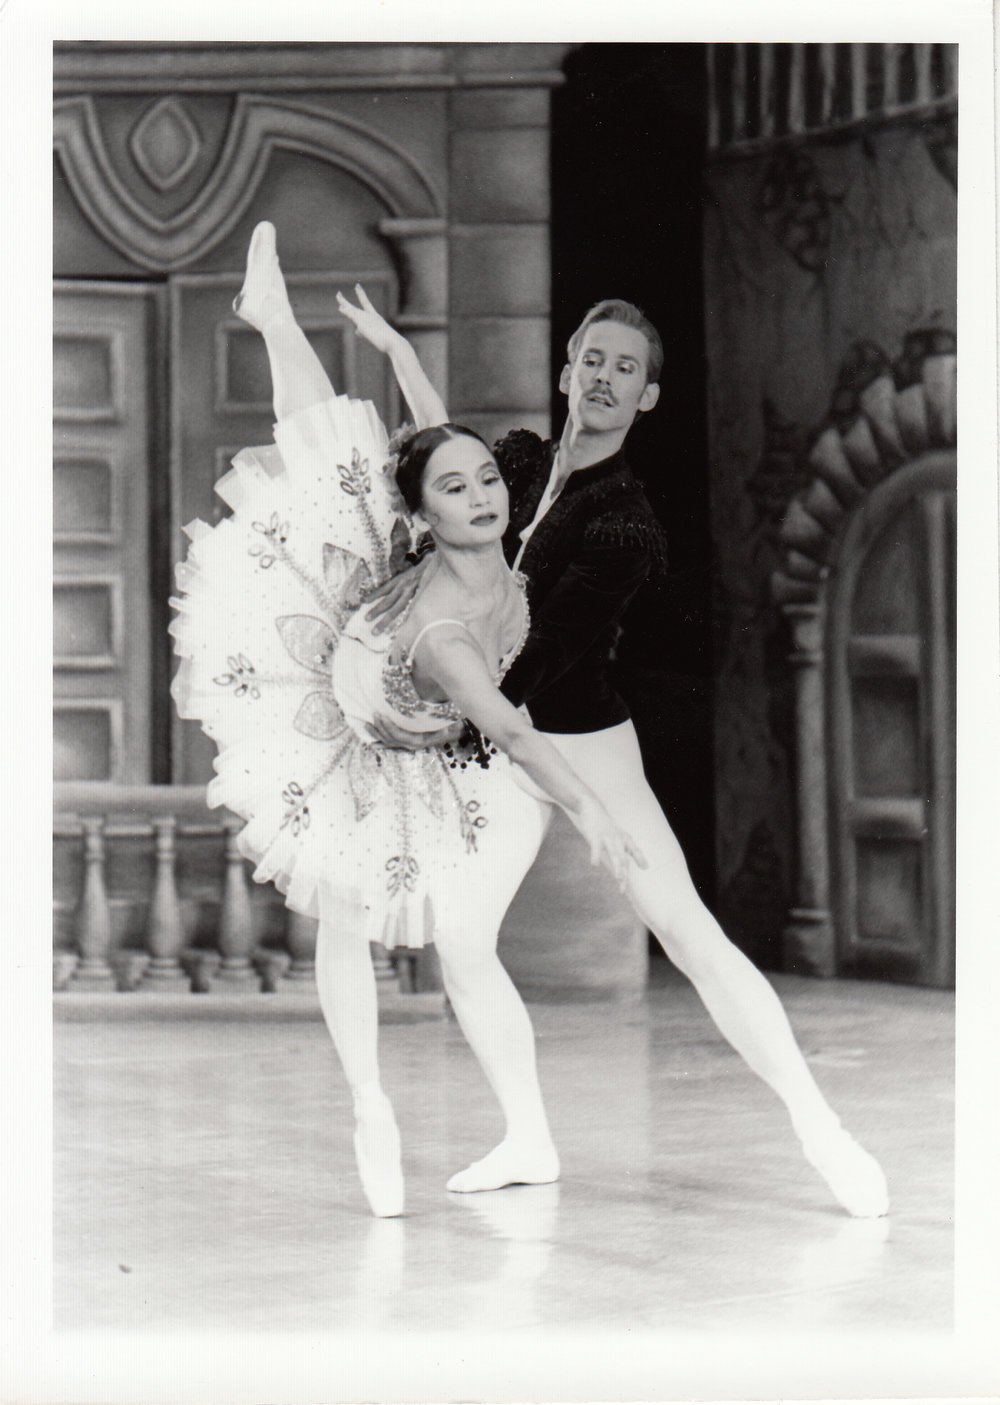 Wes Chapman, also from the American Ballet Theater, partnered Lisa Macuja in the same production at the Cultural Center of the Philippines. Photo courtesy of the Ballet Manila Archives